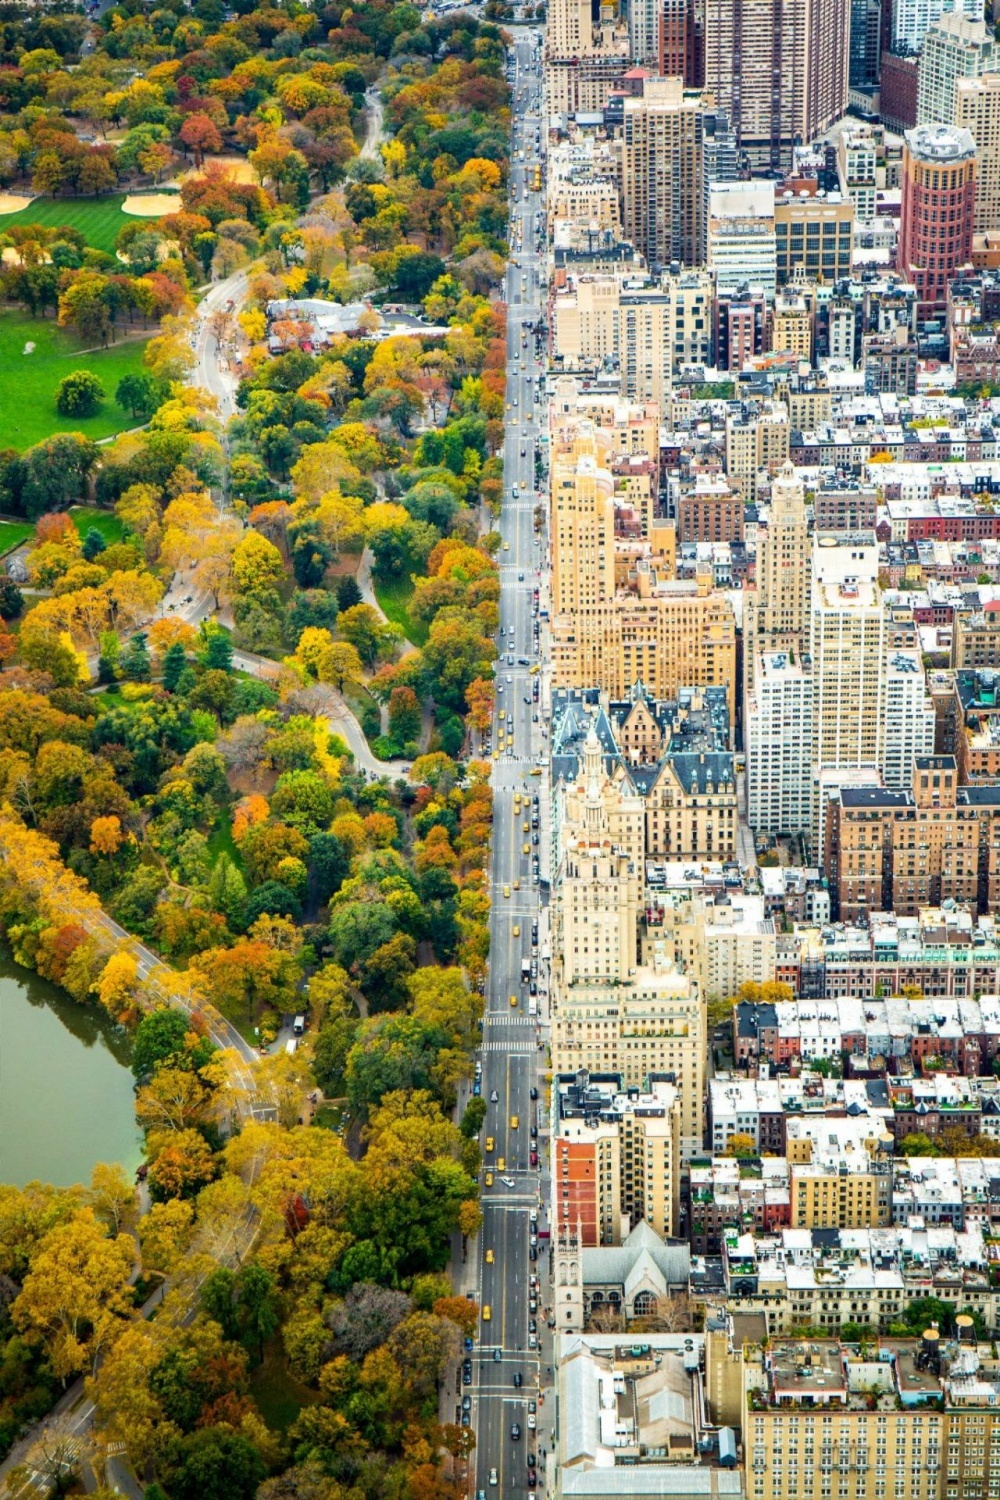 The 100 best photographs ever taken without photoshop - Two worlds divided, New York, USA